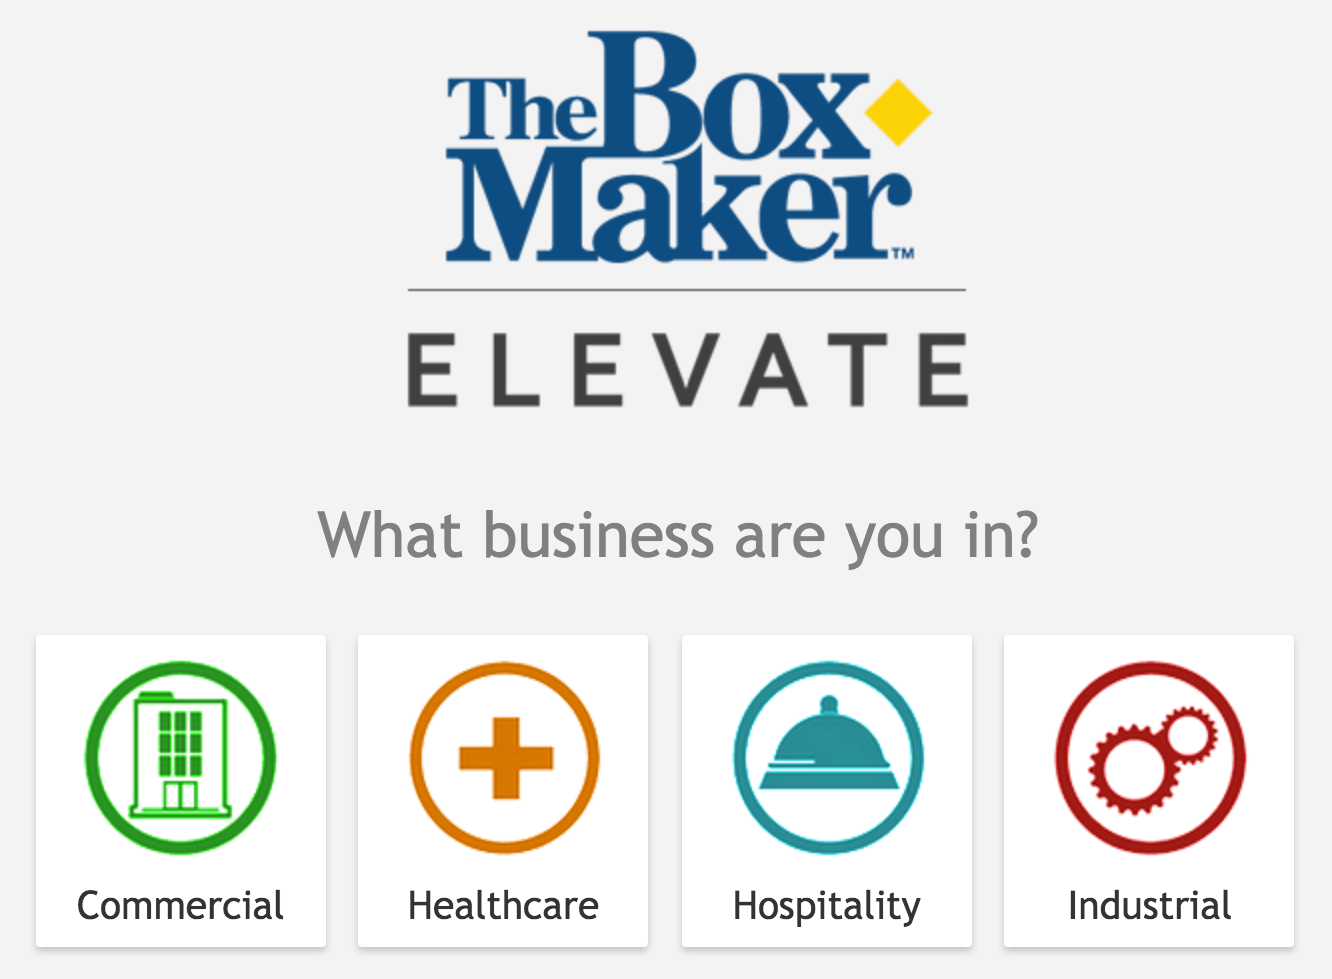 The BoxMaker Elevate Afflink Lean Manufacturing